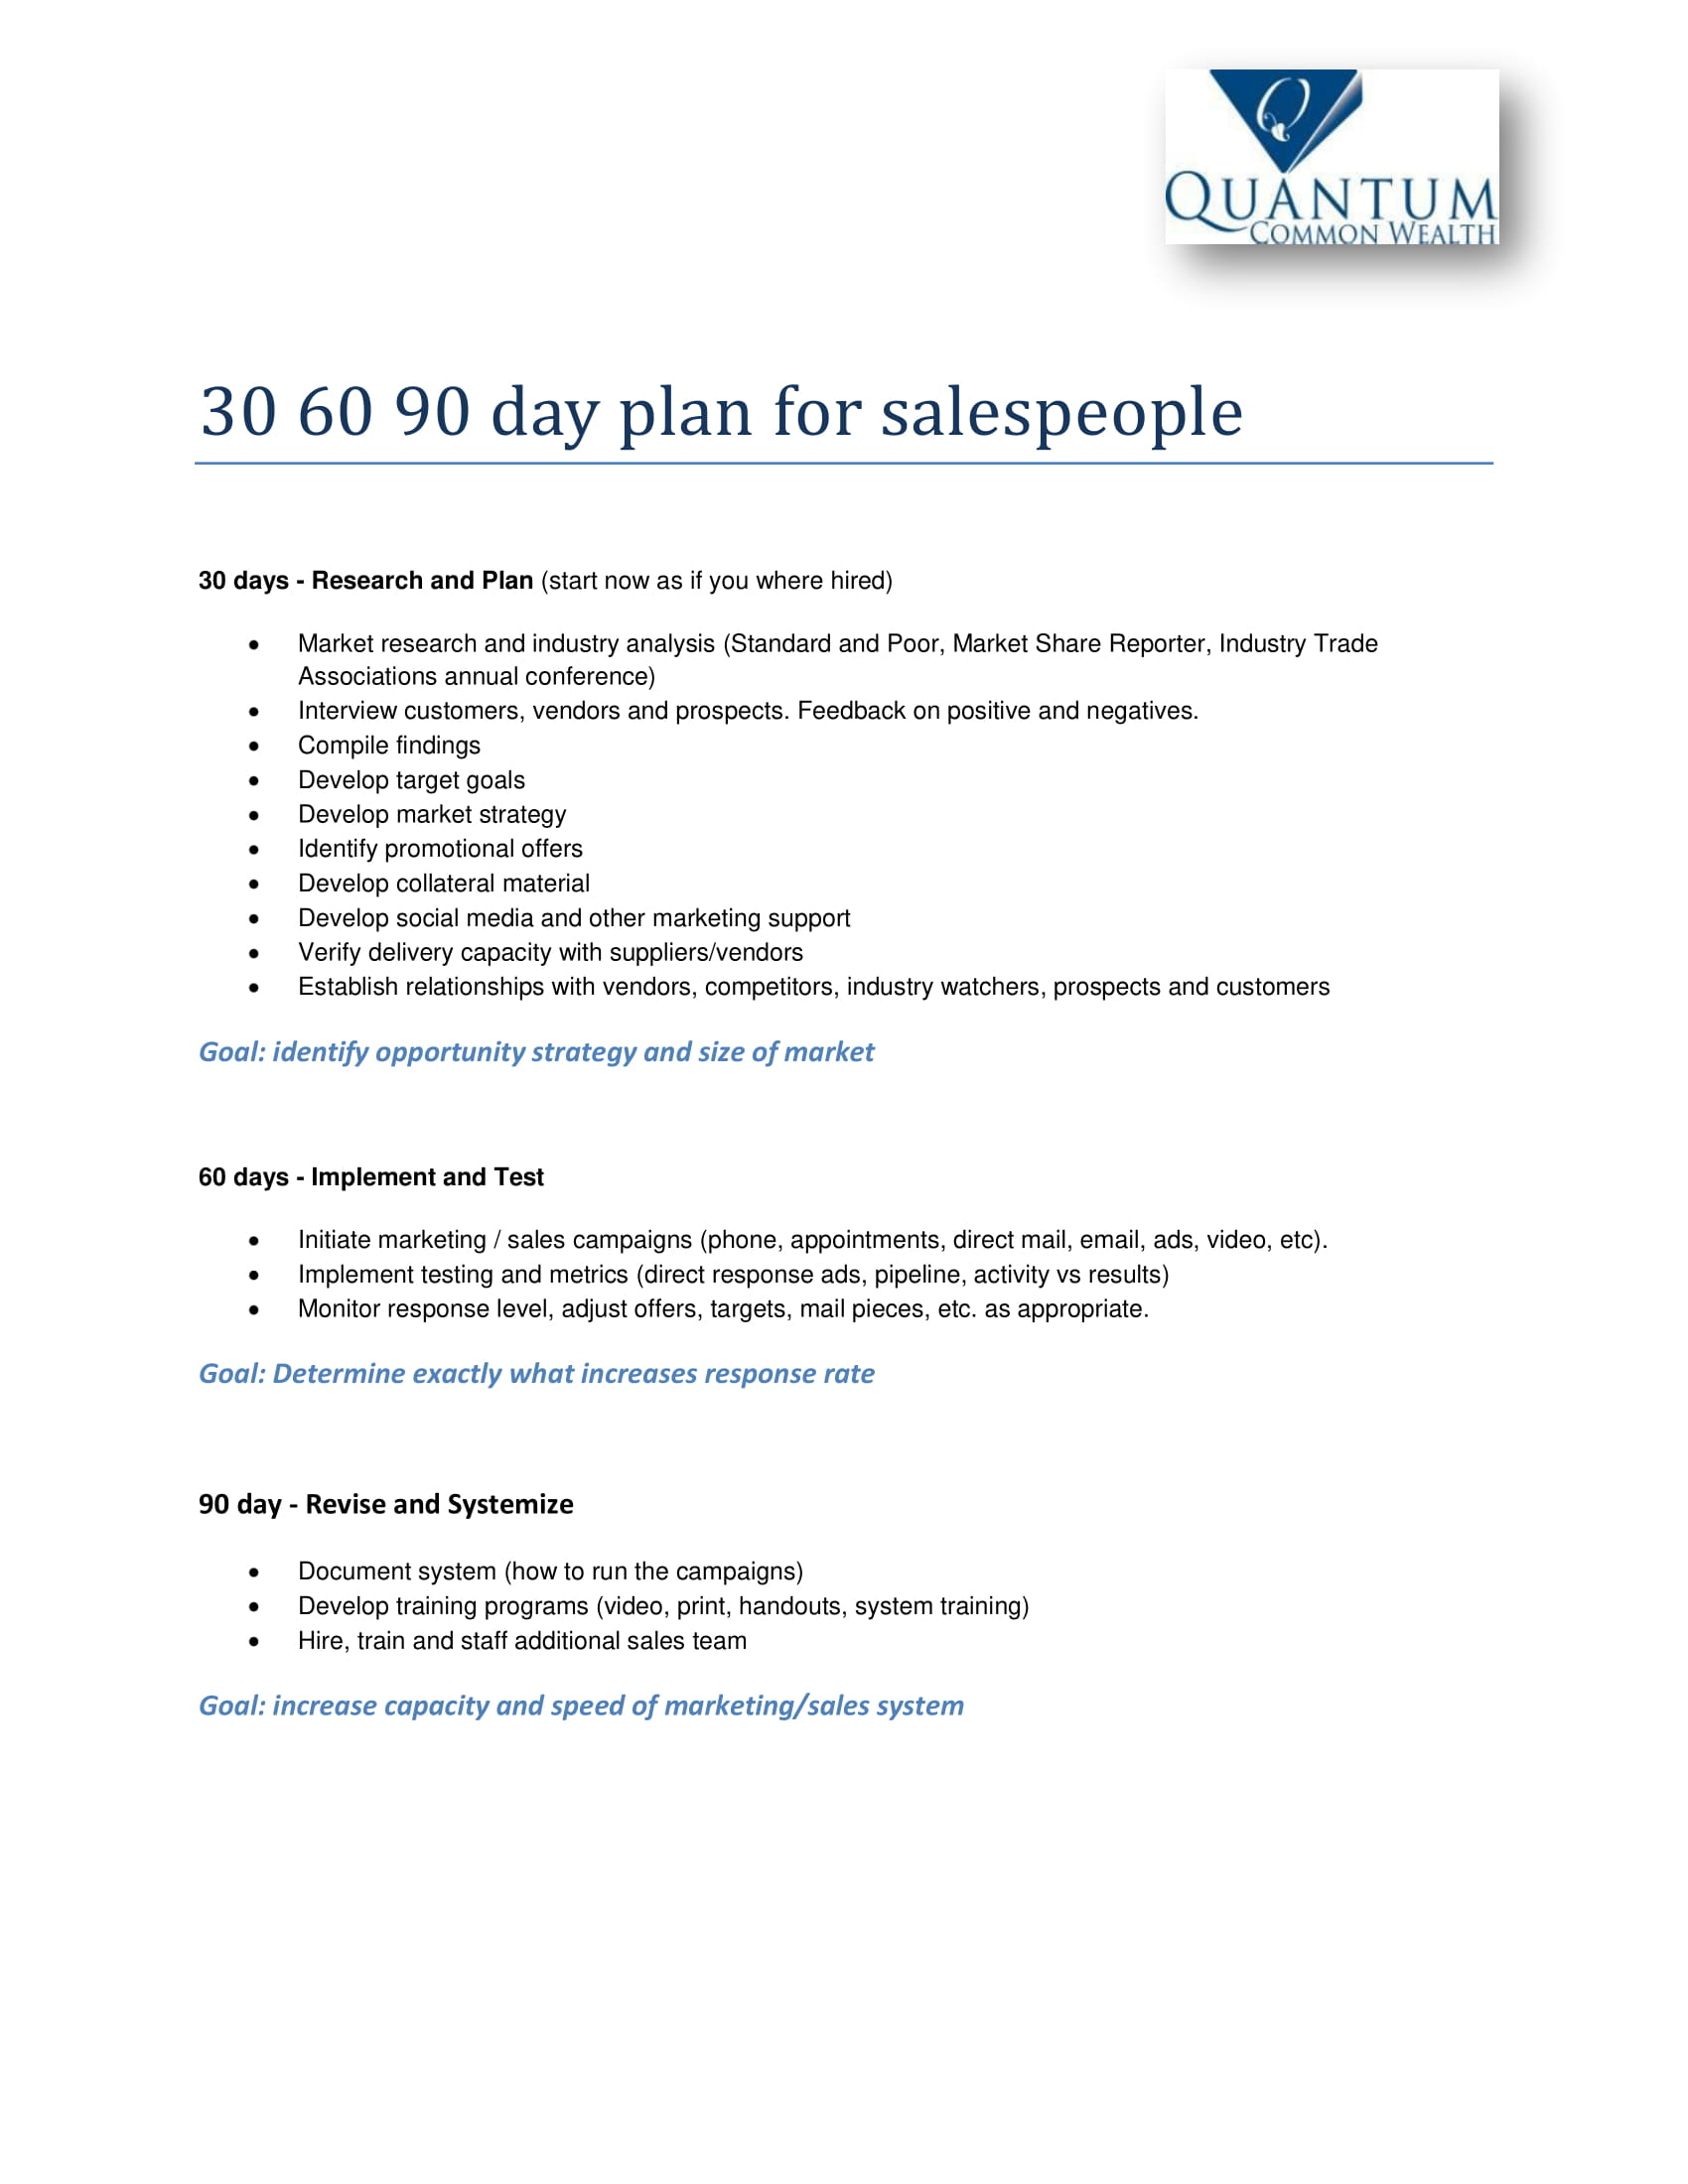 30 60 90 day concise sales plan example